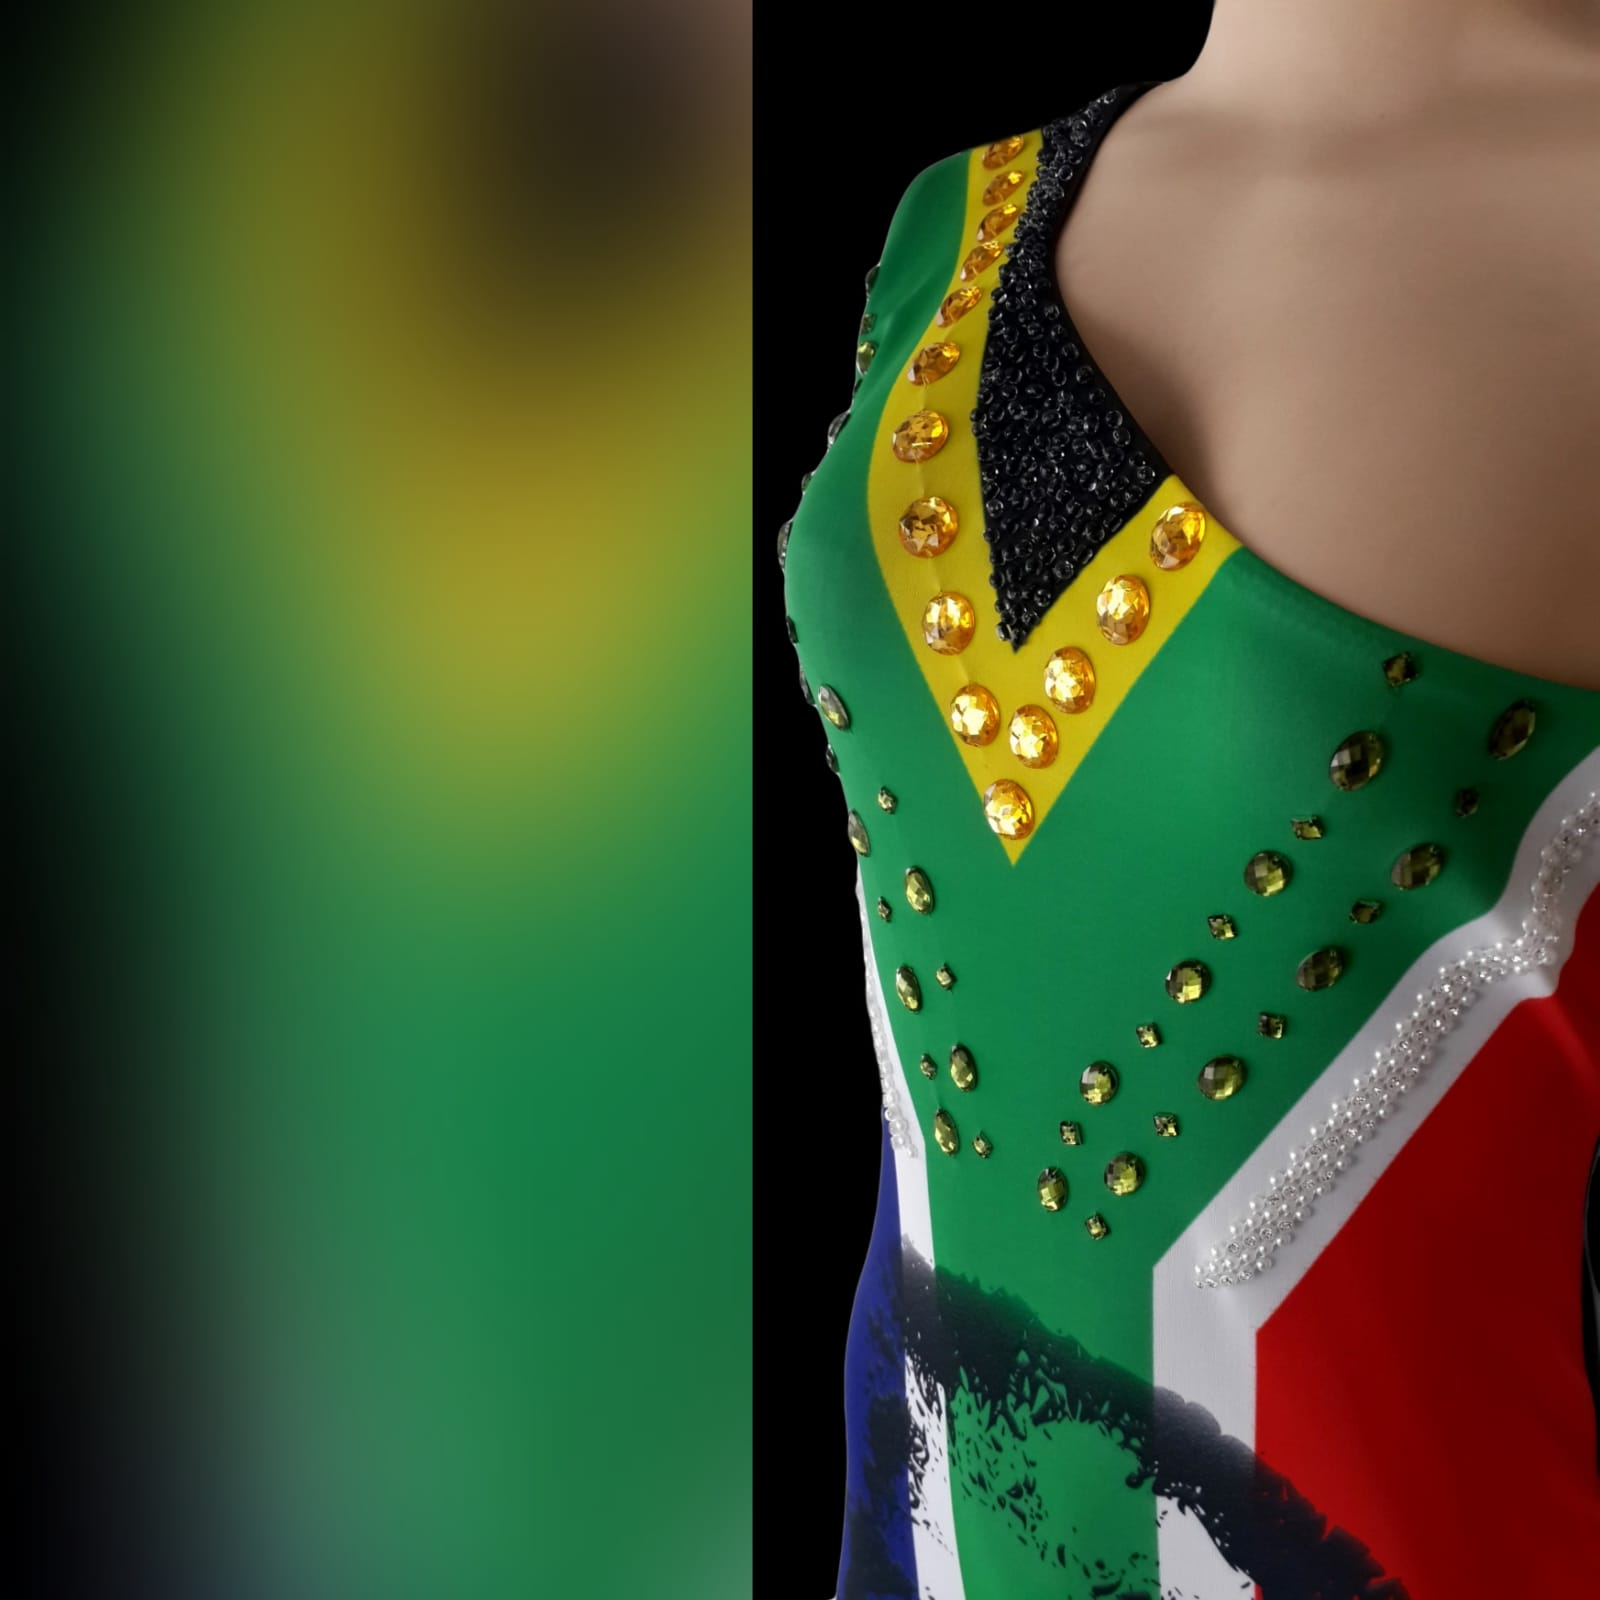 South african flag evening traditional dress 2 sa flag with mandela face, evening dress with a single shoulder and a train. Beaded detailing.